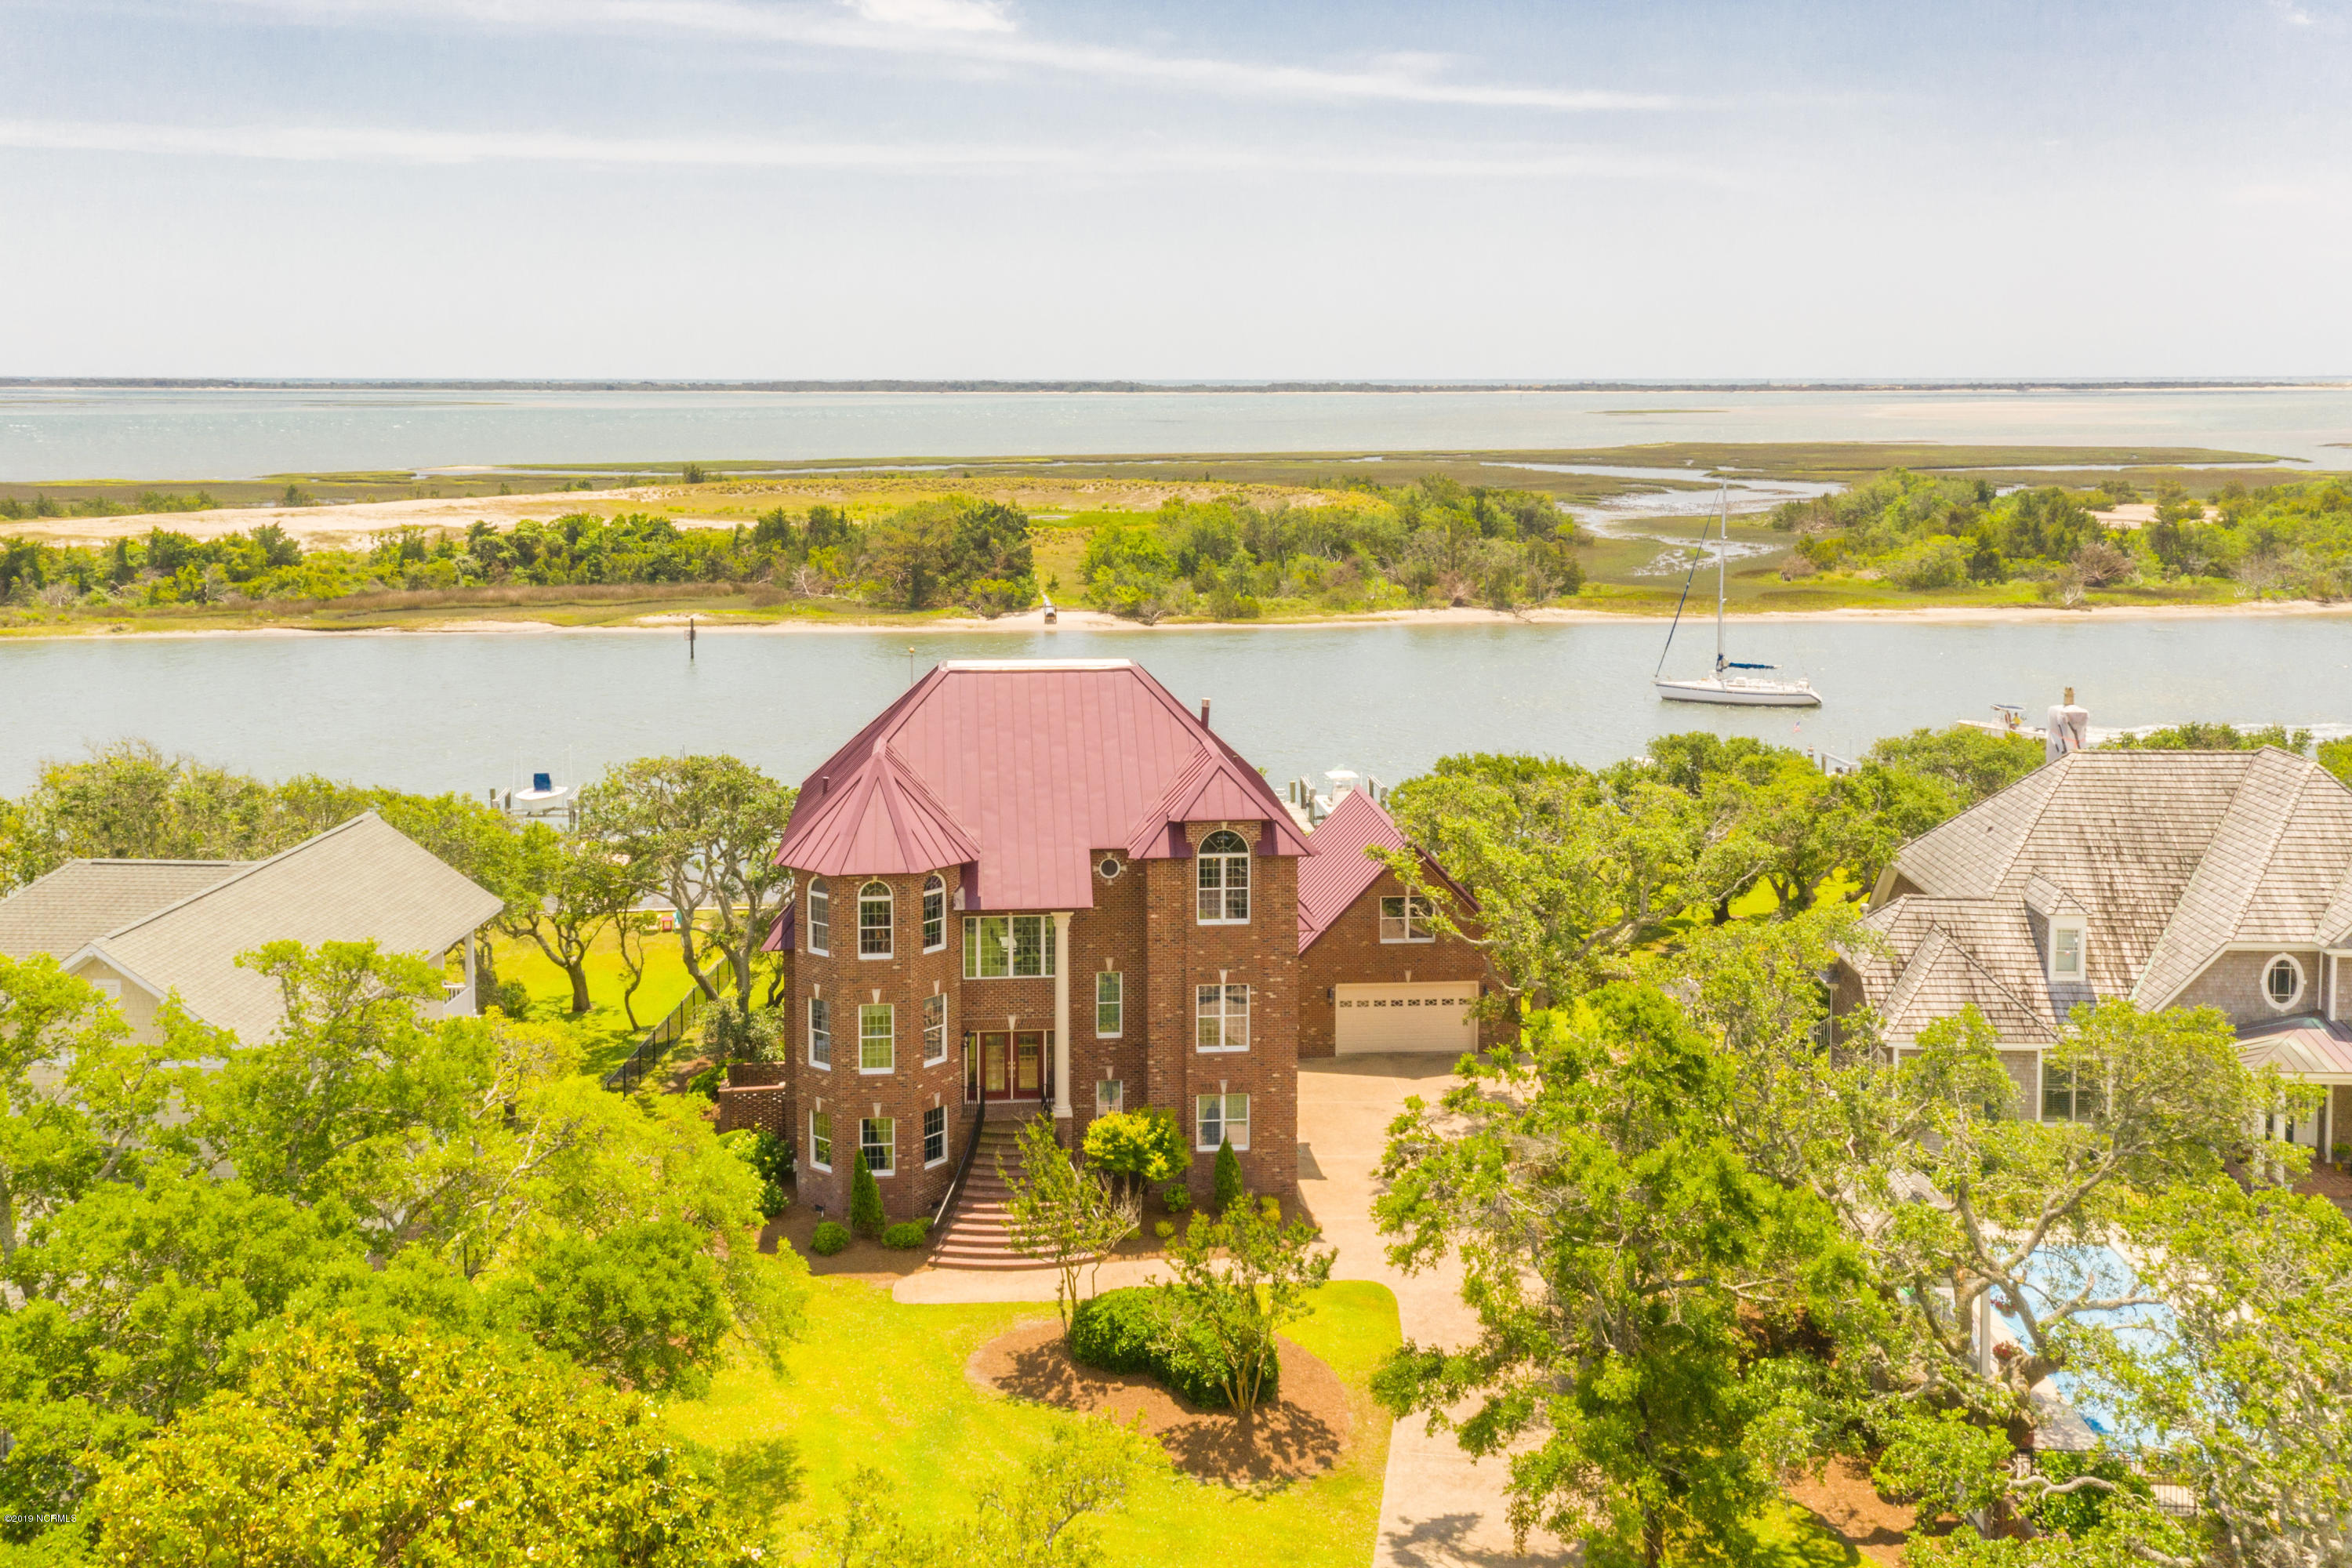 2528 Lennoxville Road, Beaufort, North Carolina 28516, 4 Bedrooms Bedrooms, 9 Rooms Rooms,4 BathroomsBathrooms,Single family residence,For sale,Lennoxville,100208852